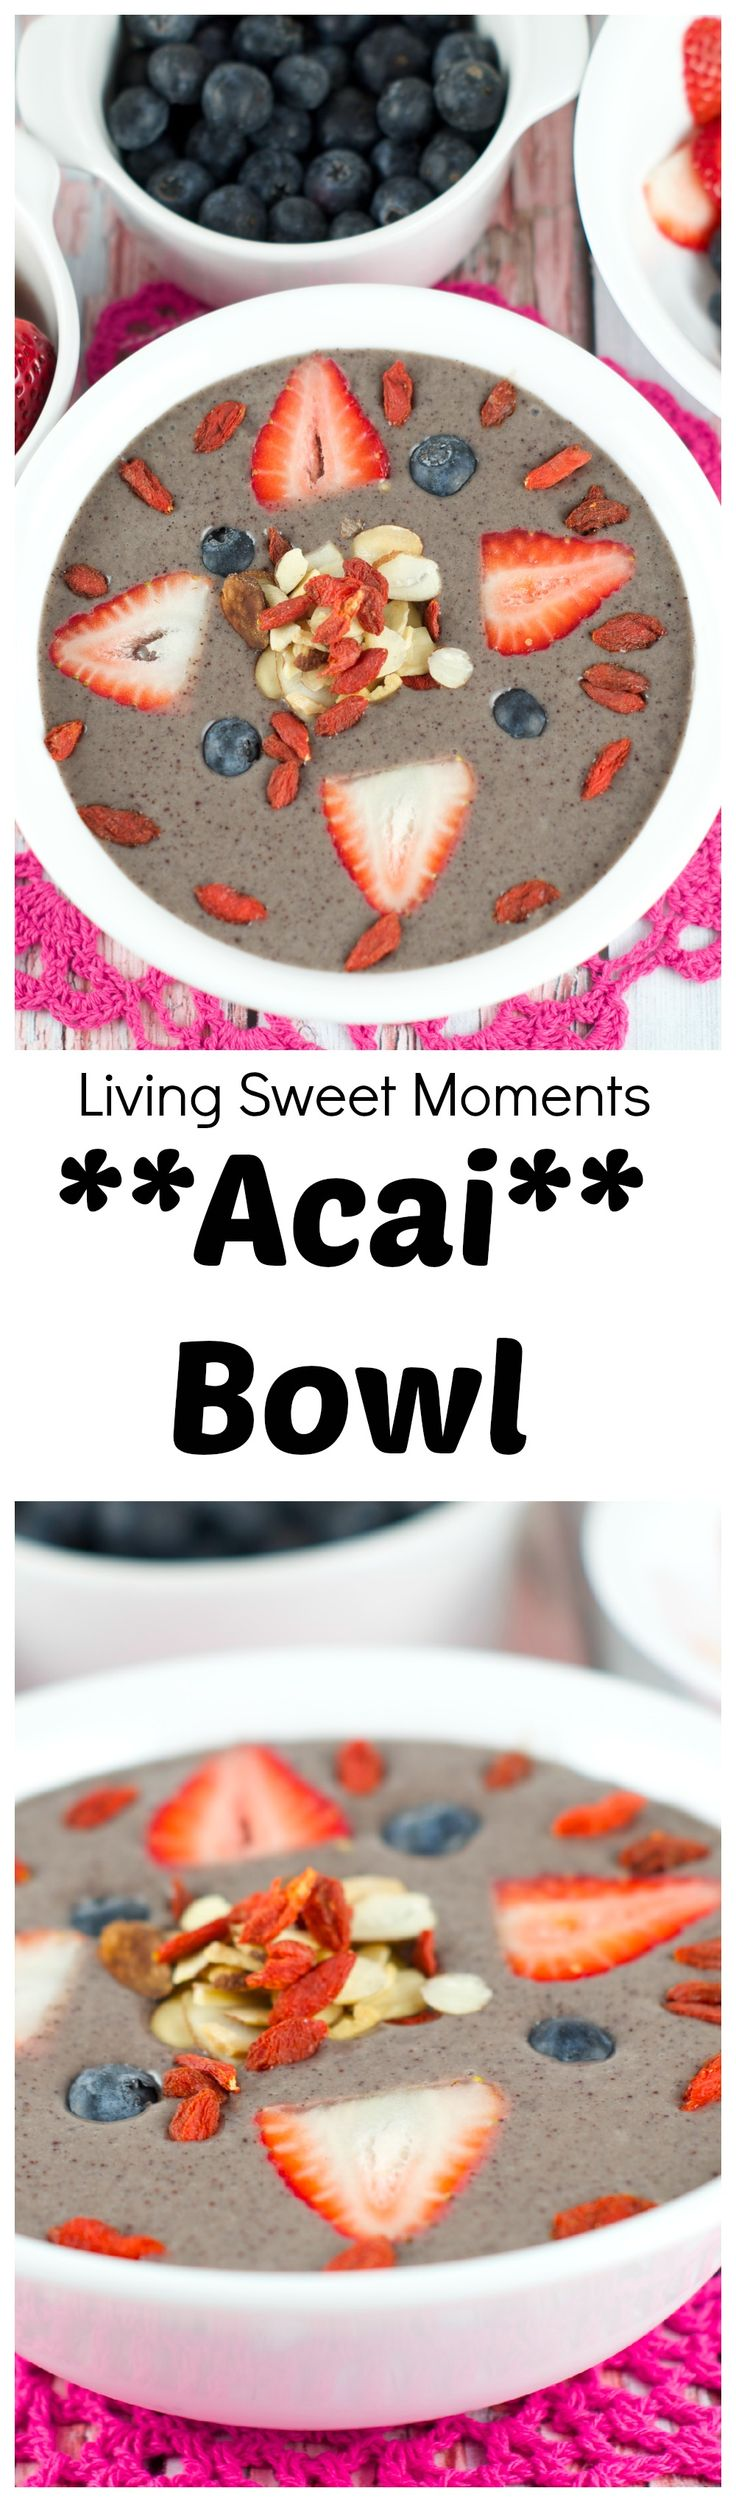 Acai Bowl - Delicious smoothie bowl filled with acai, fruit and nuts. A delicious and healthy breakfast that's ready and seconds and will satisfy all day.